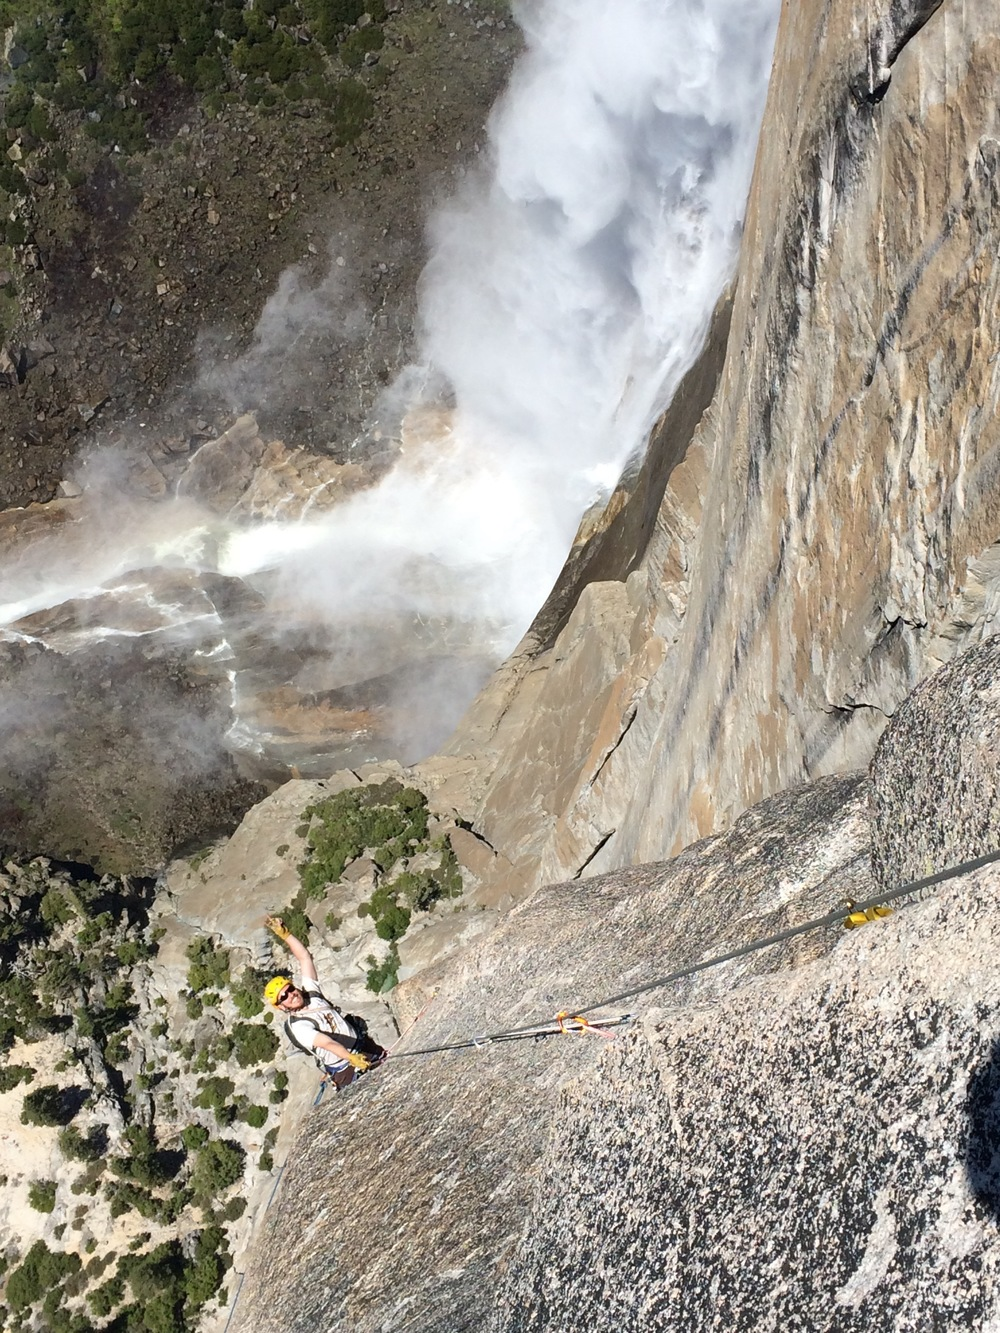 Jugging the last pitch, with Yosemite Falls in the background.